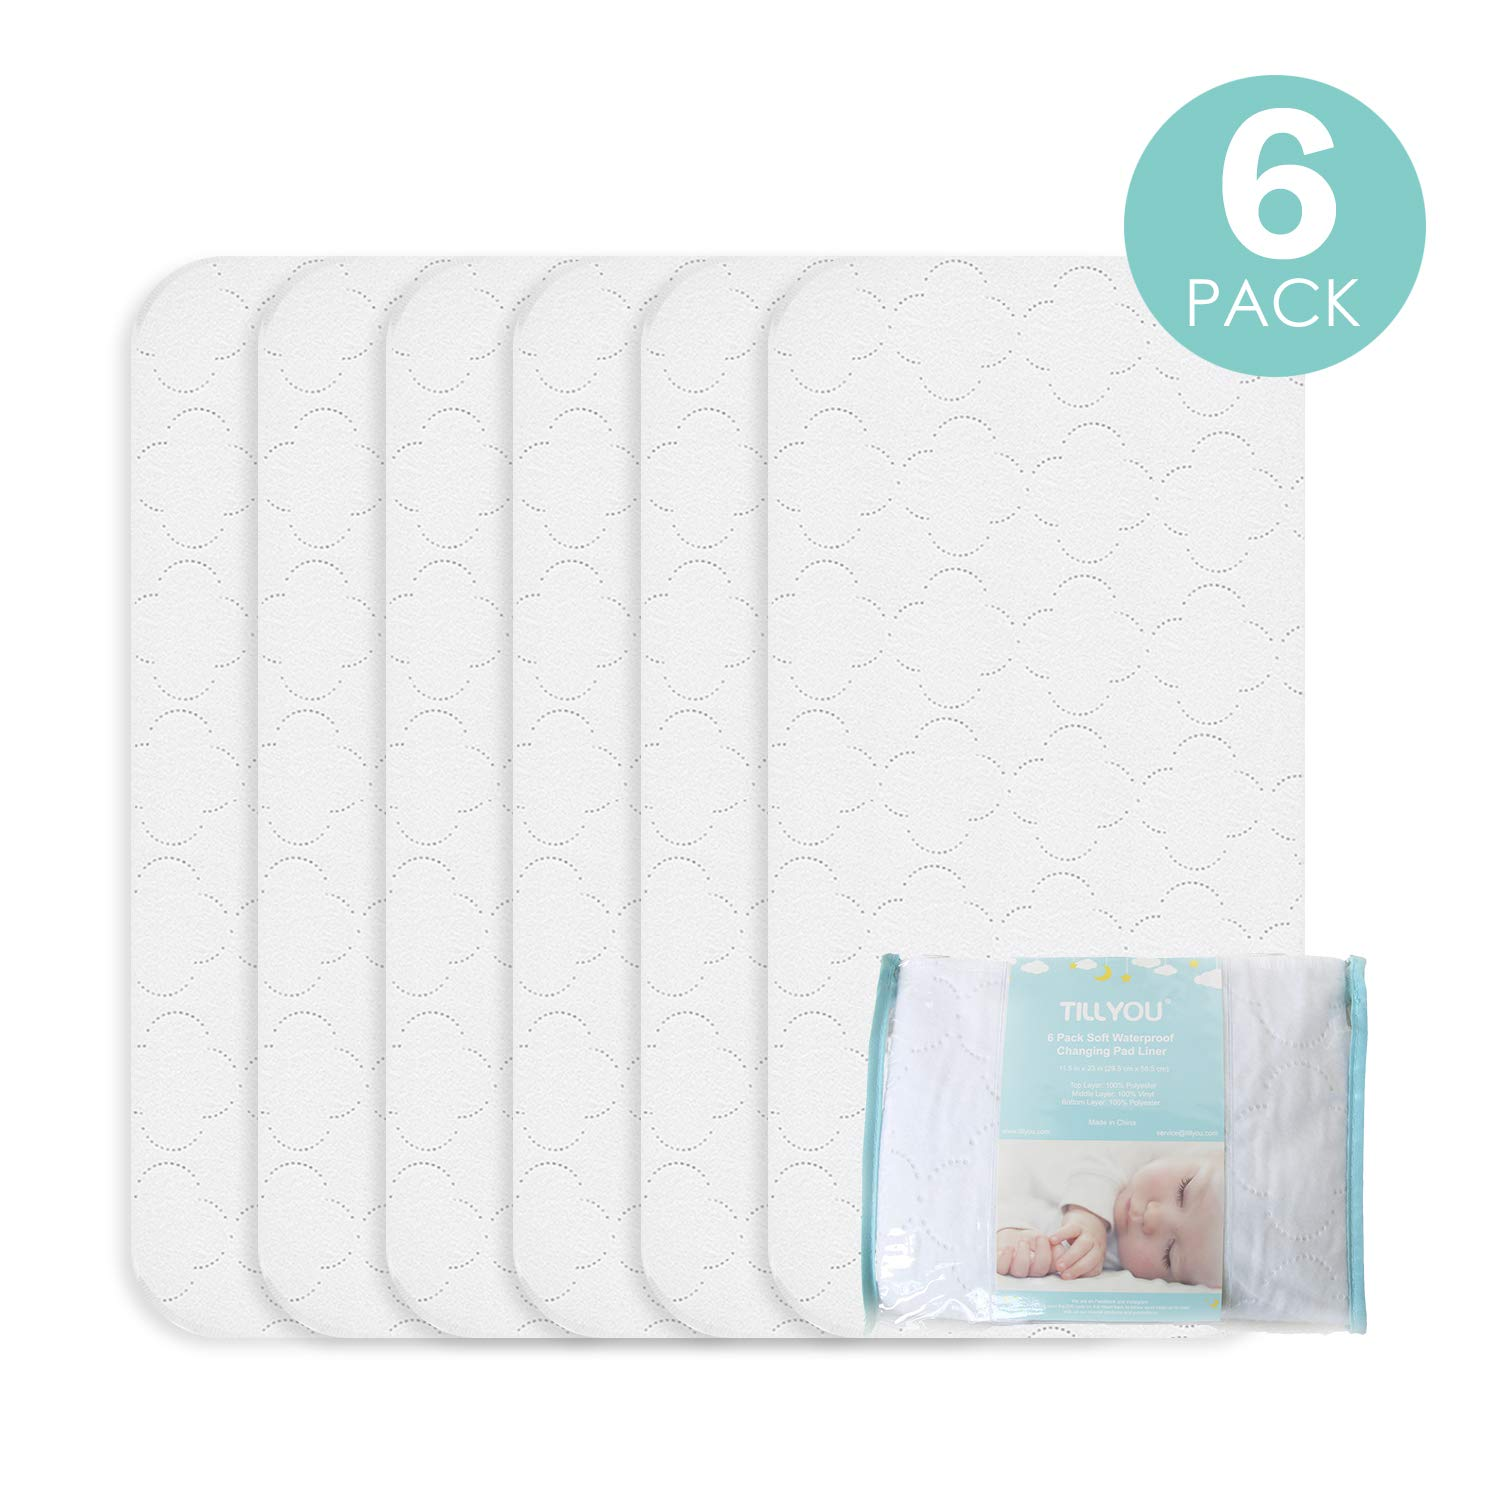 TILLYOU Portable Quilted Changing Pad Liners Waterproof, Ultra Soft Thick Breathable Changing Table Cover Liners, 11.5'' X 23'' Washable Reusable Changing Mats Sheet Protector, 6 Pack by TILLYOU